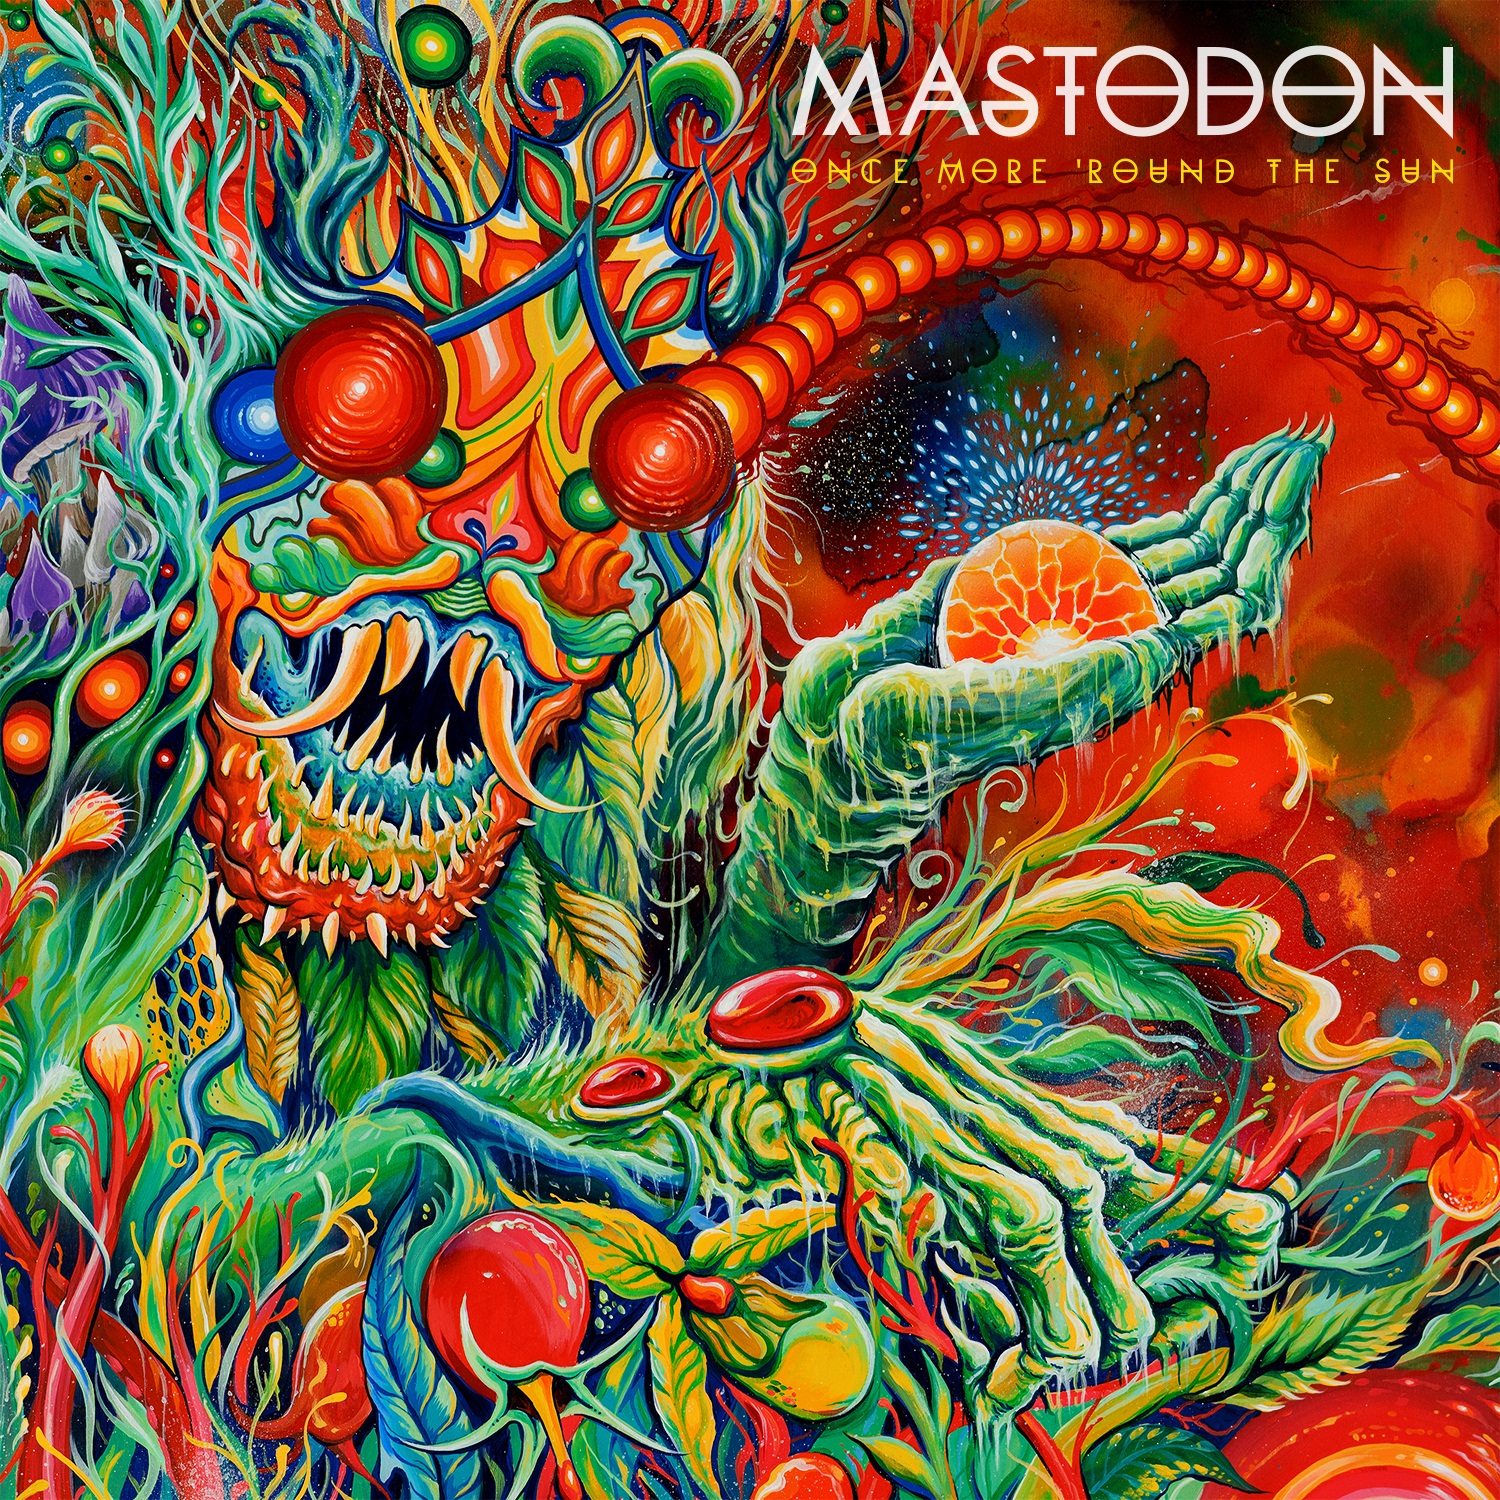 Mastodon Once More 'Rounds the Sun